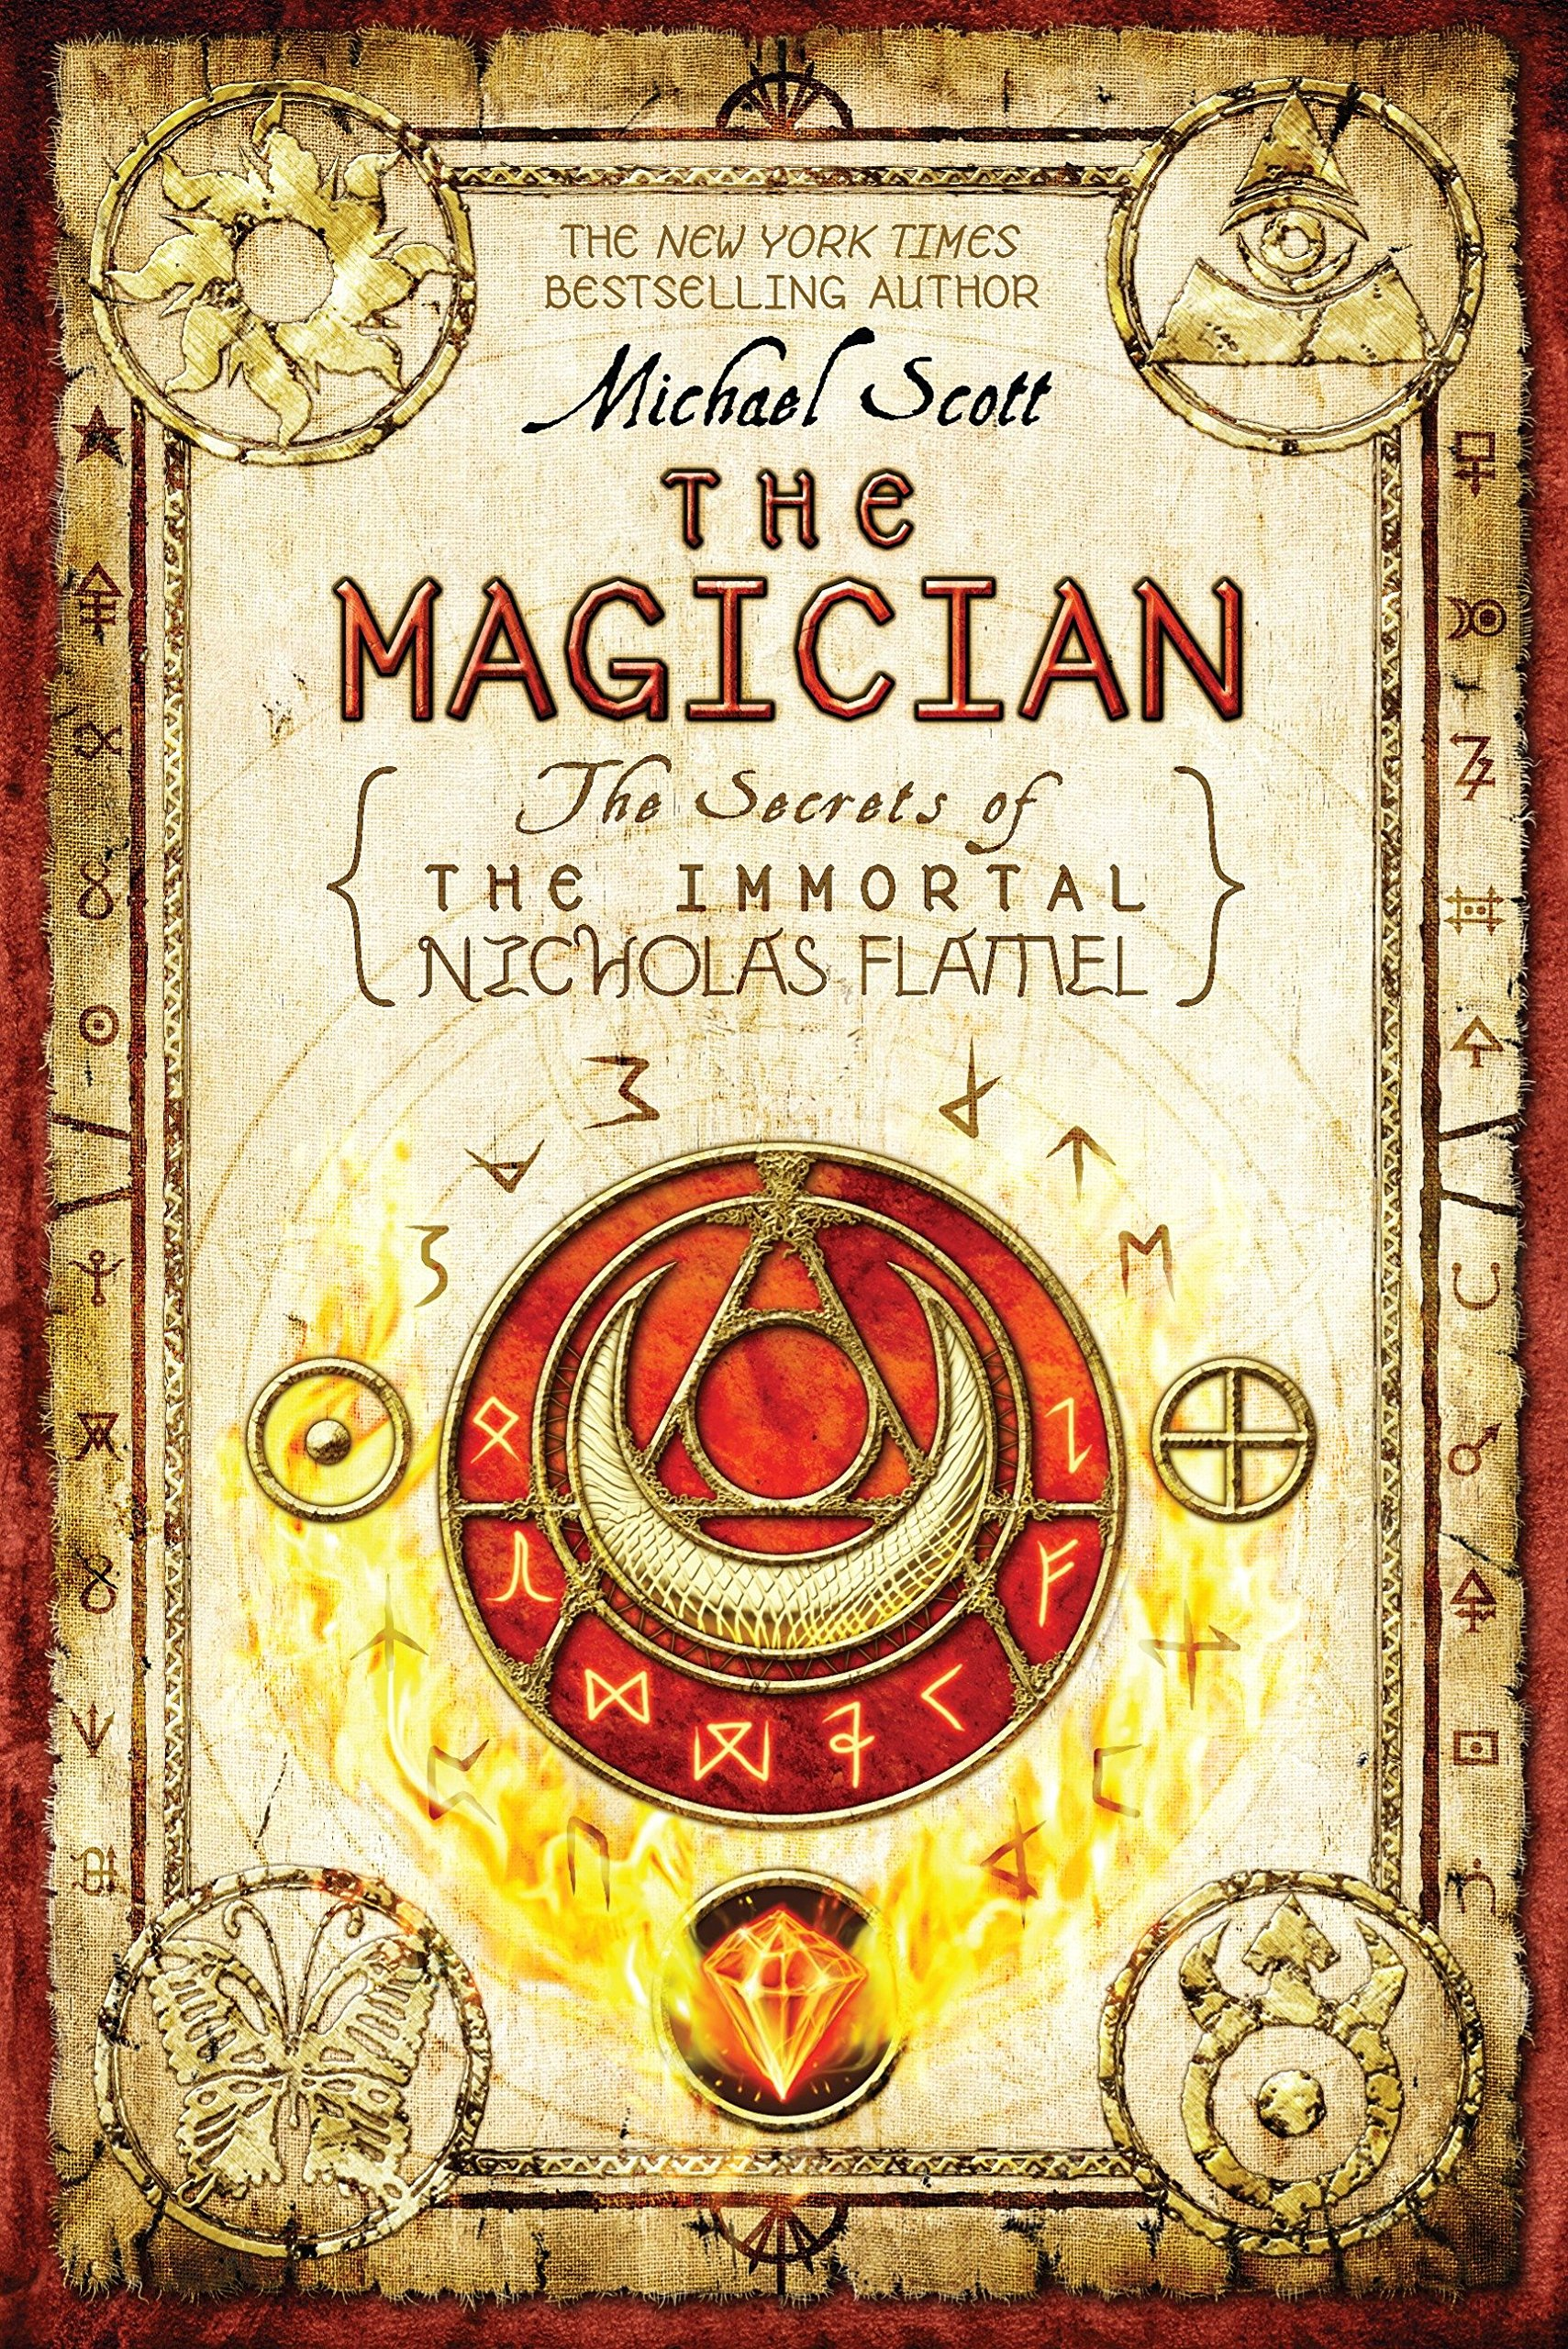 Download The Magician (The Secrets of the Immortal Nicholas Flamel #2) PDF